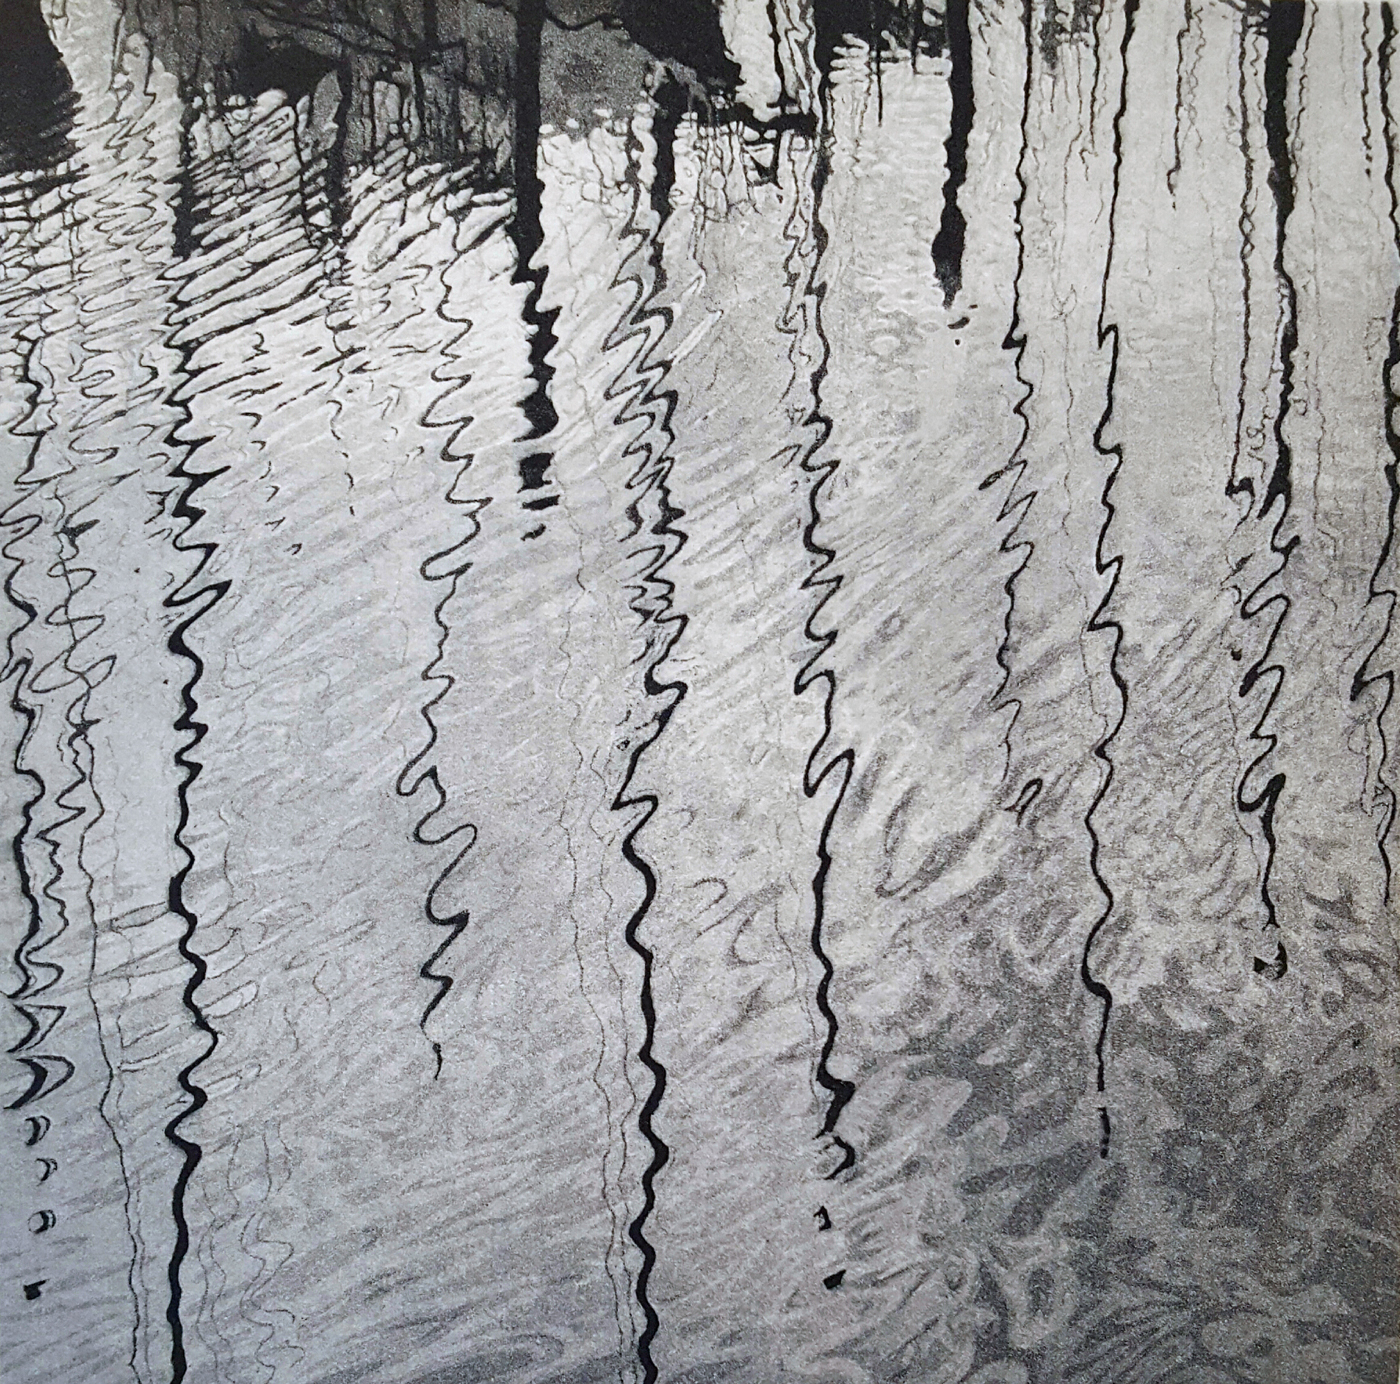 Water Music is an aquatint etching by Stephen McMillan